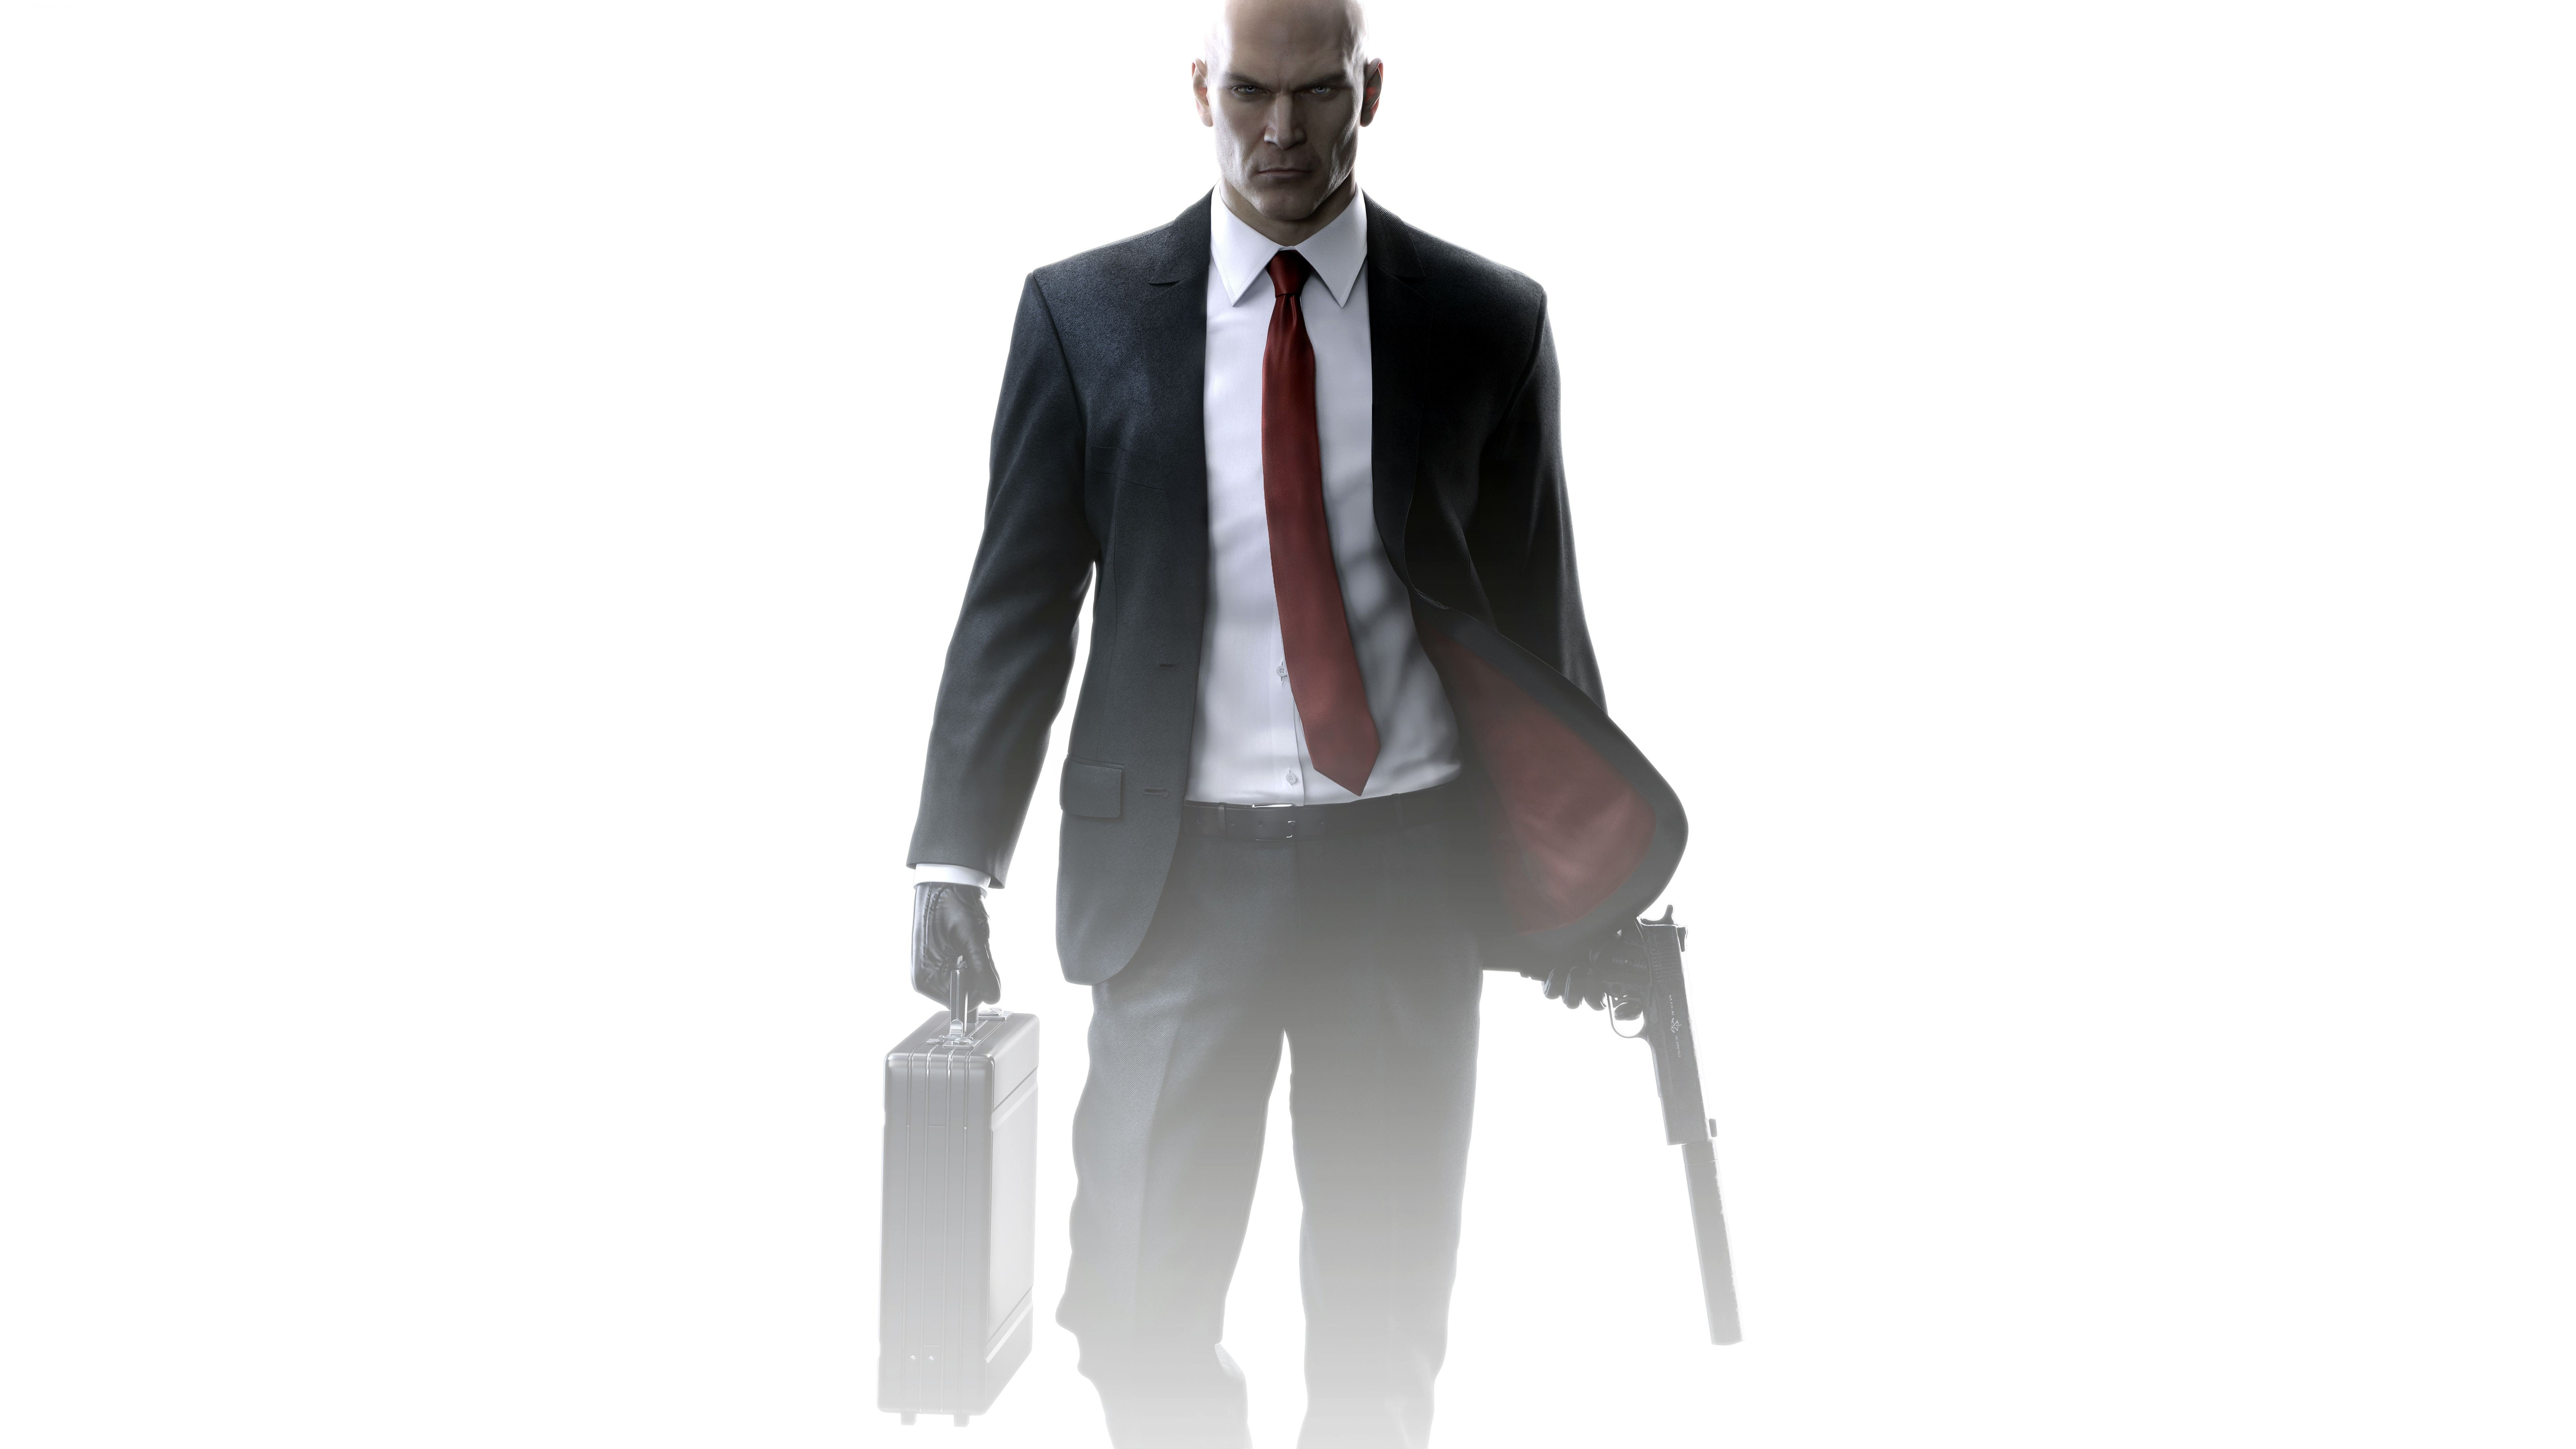 7680x4320 Hitman Agent 47 Game 8k Hd 4k Wallpapers Images